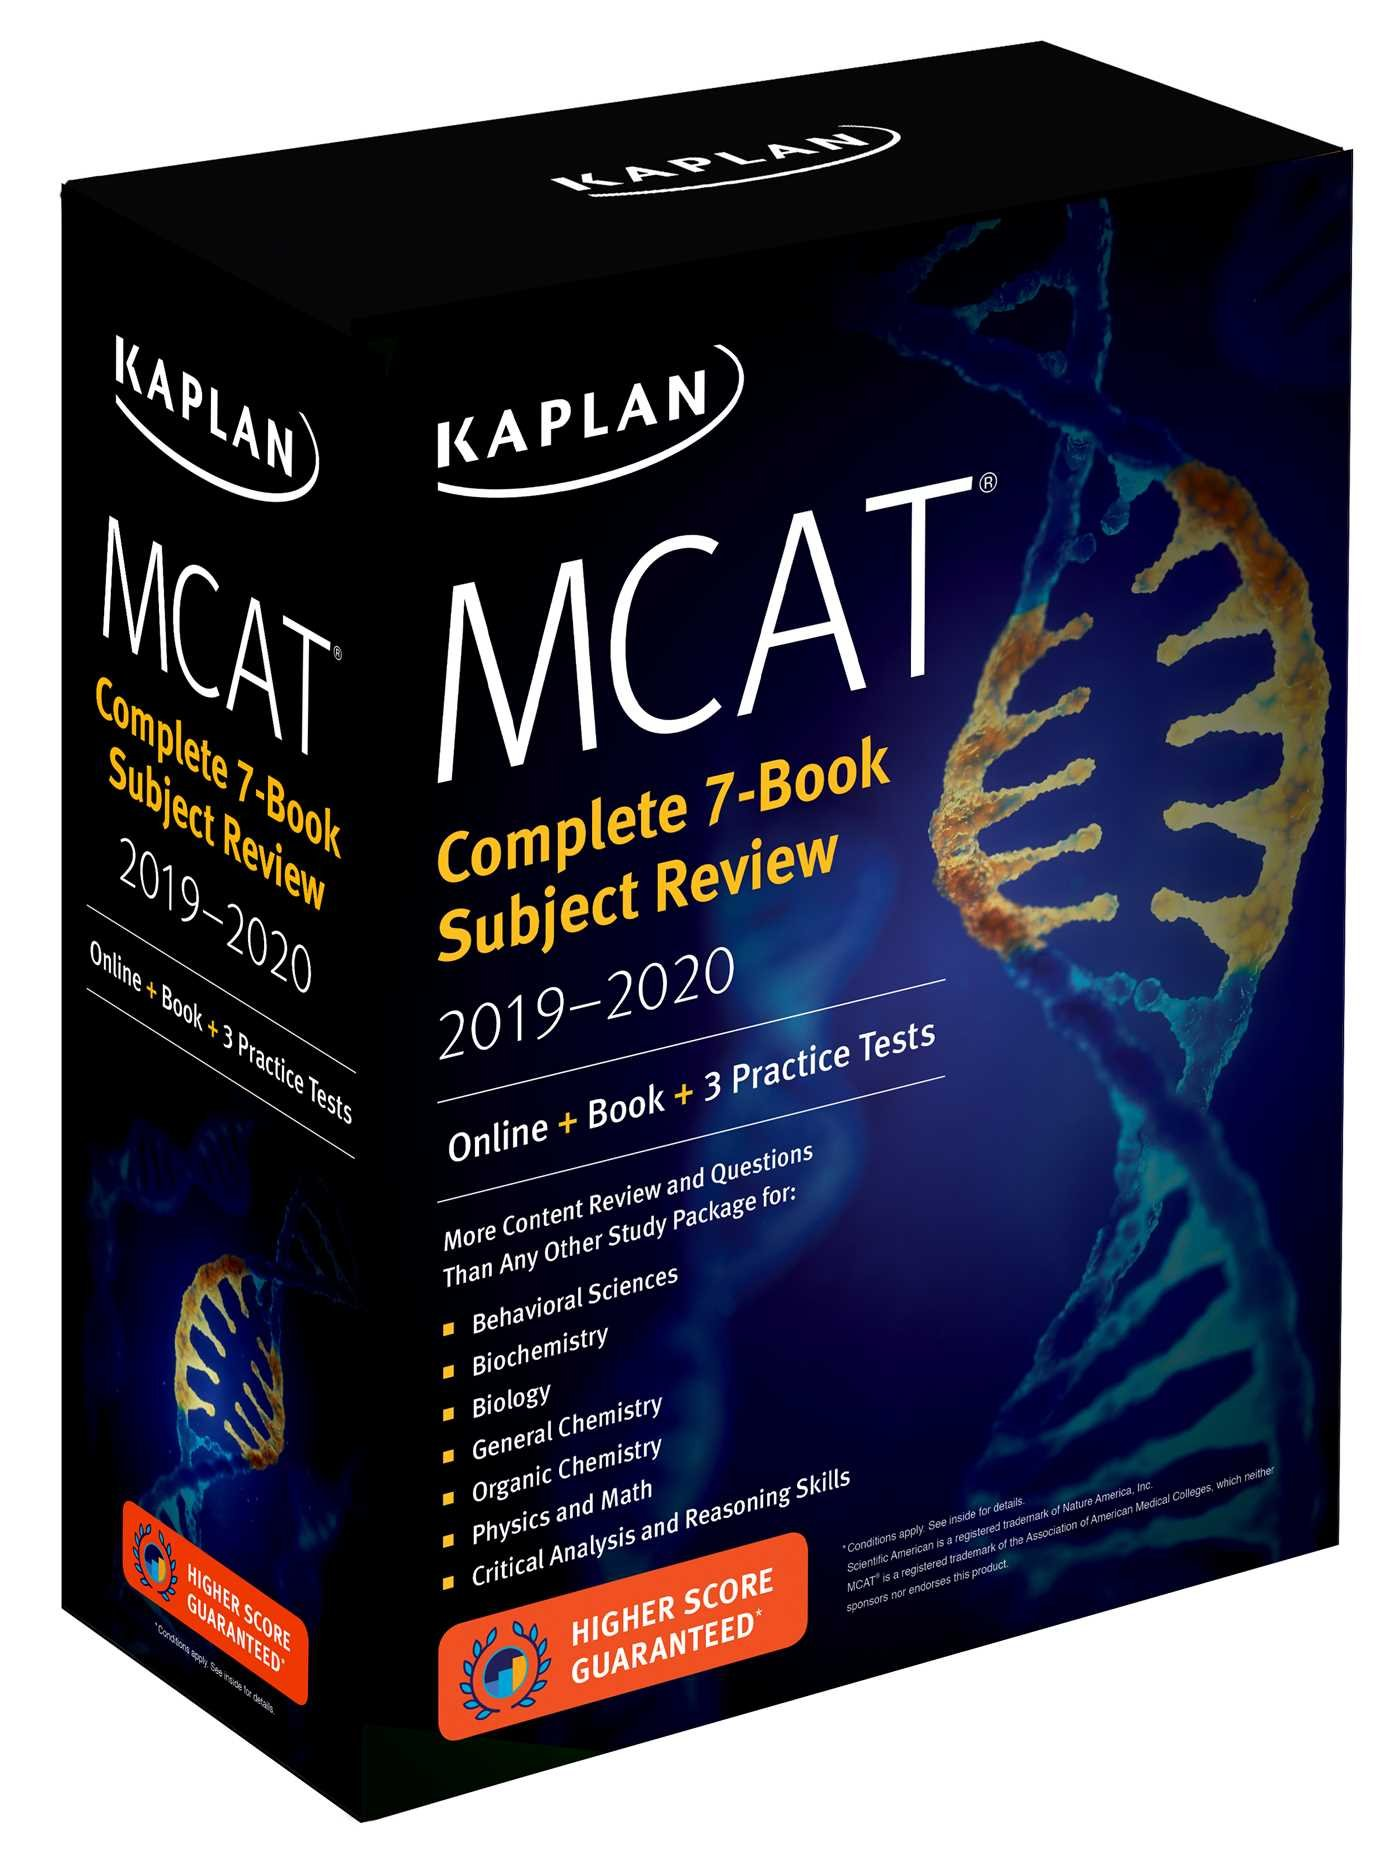 MCAT REVIEW COMPLETE 7-BOOK SET 2019 Kaplan Test Prep: Amazon.es: Kaplan Test Prep: Libros en idiomas extranjeros